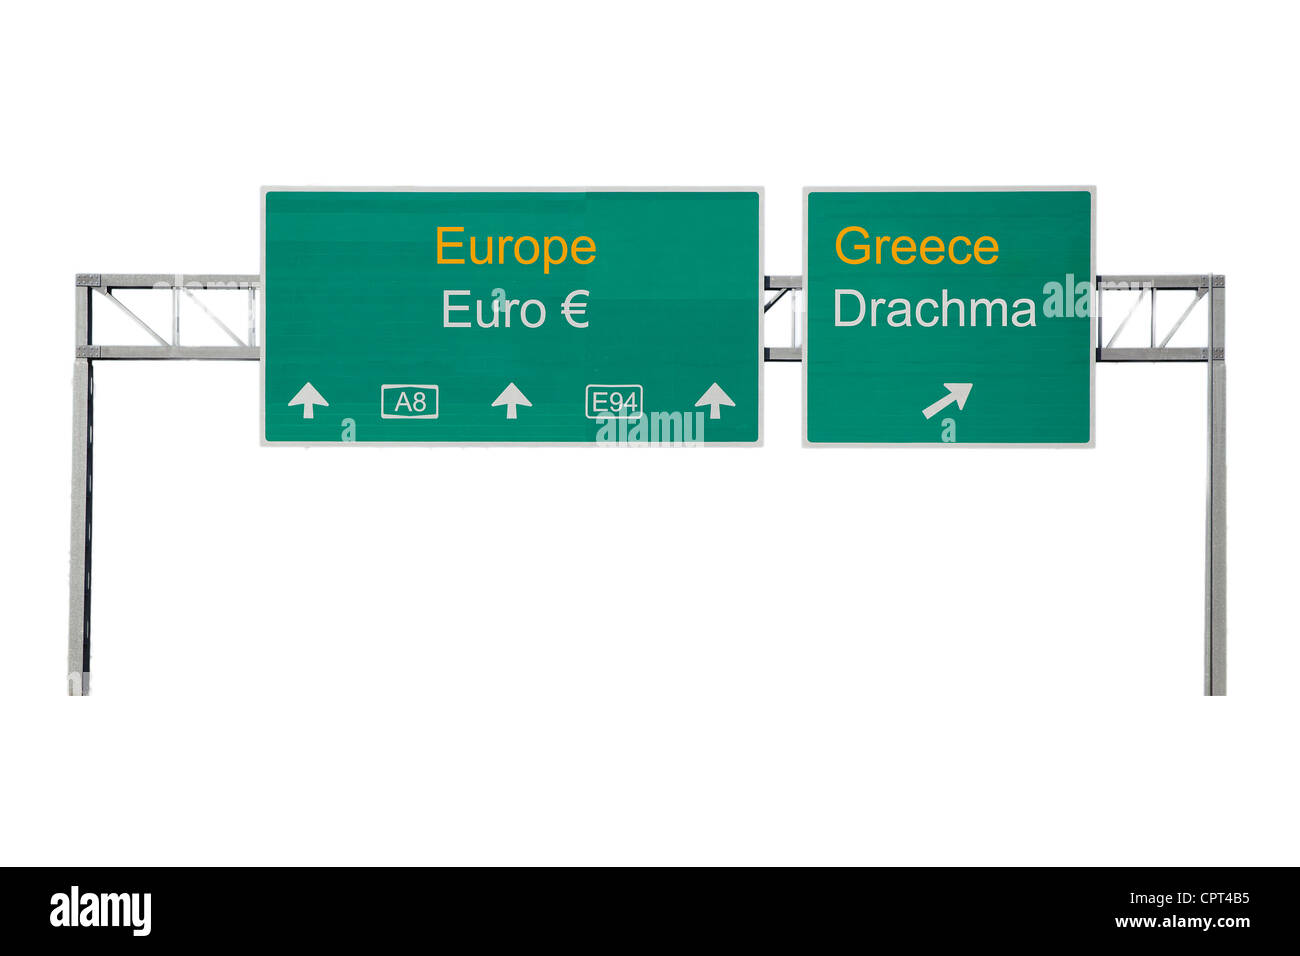 Europe-Greece and Euro-Drachma road sign - Stock Image